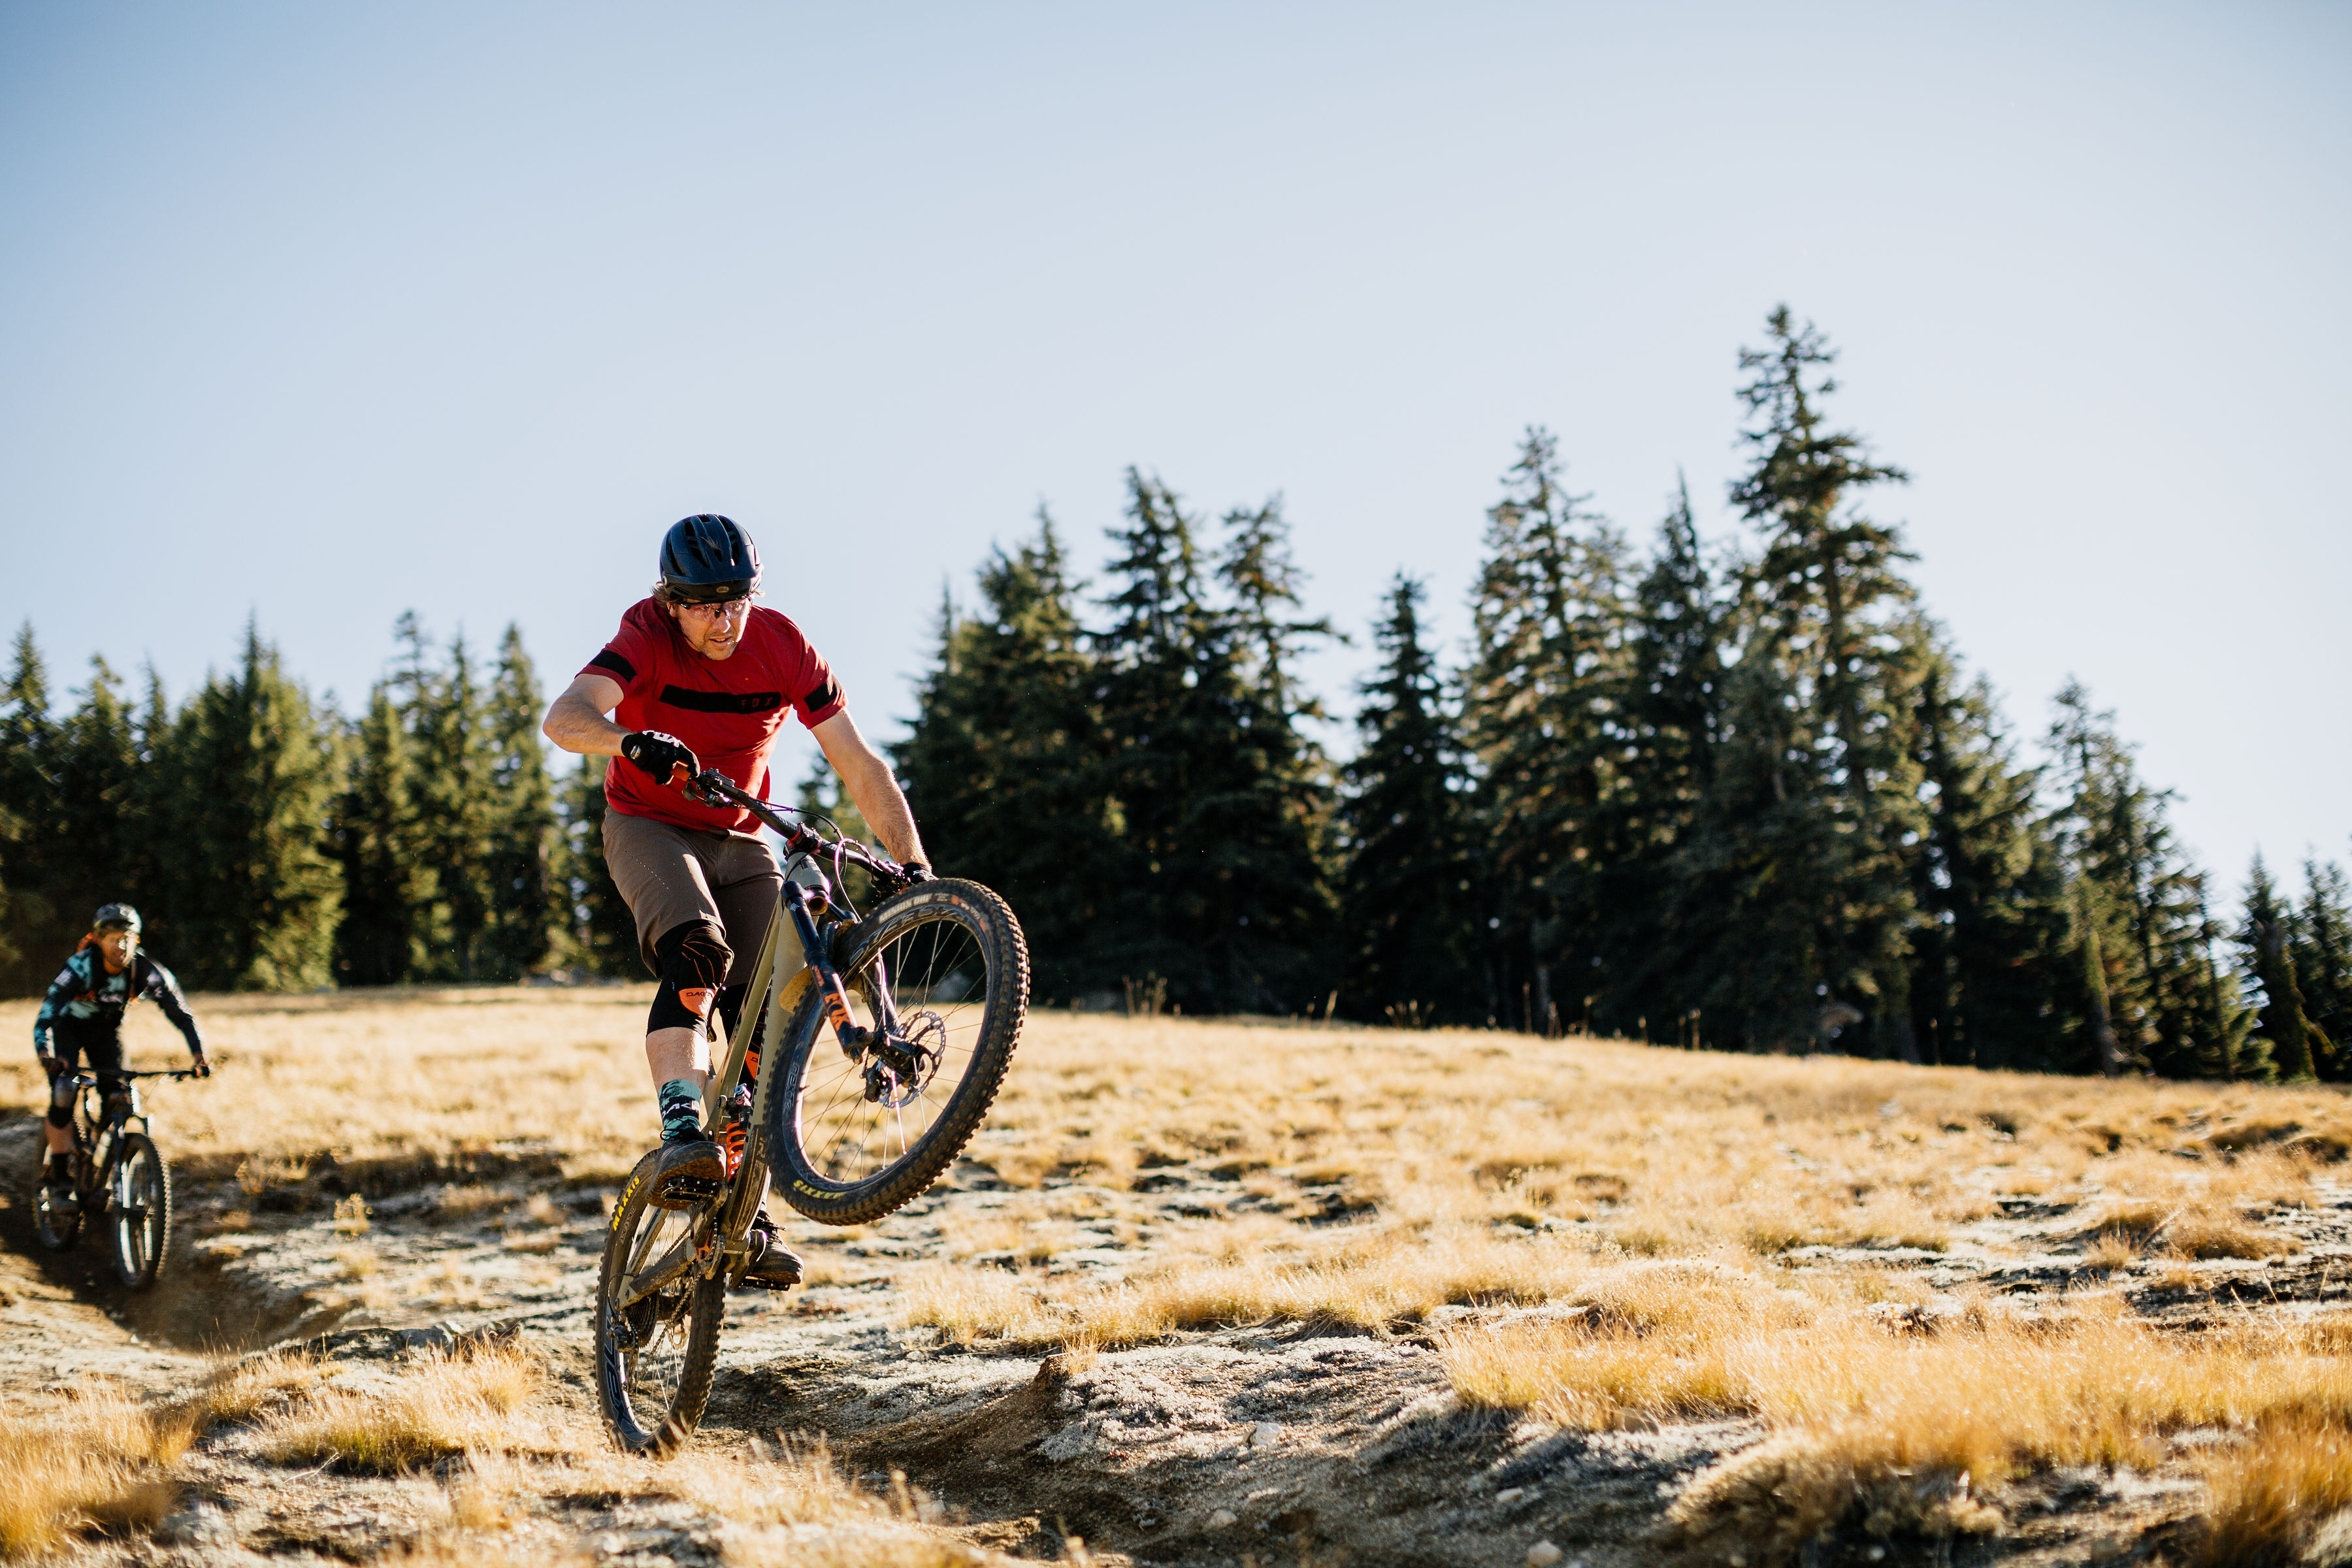 These tips from the gear experts at evo will improve your time on the trails. Photo by Cameron Munn